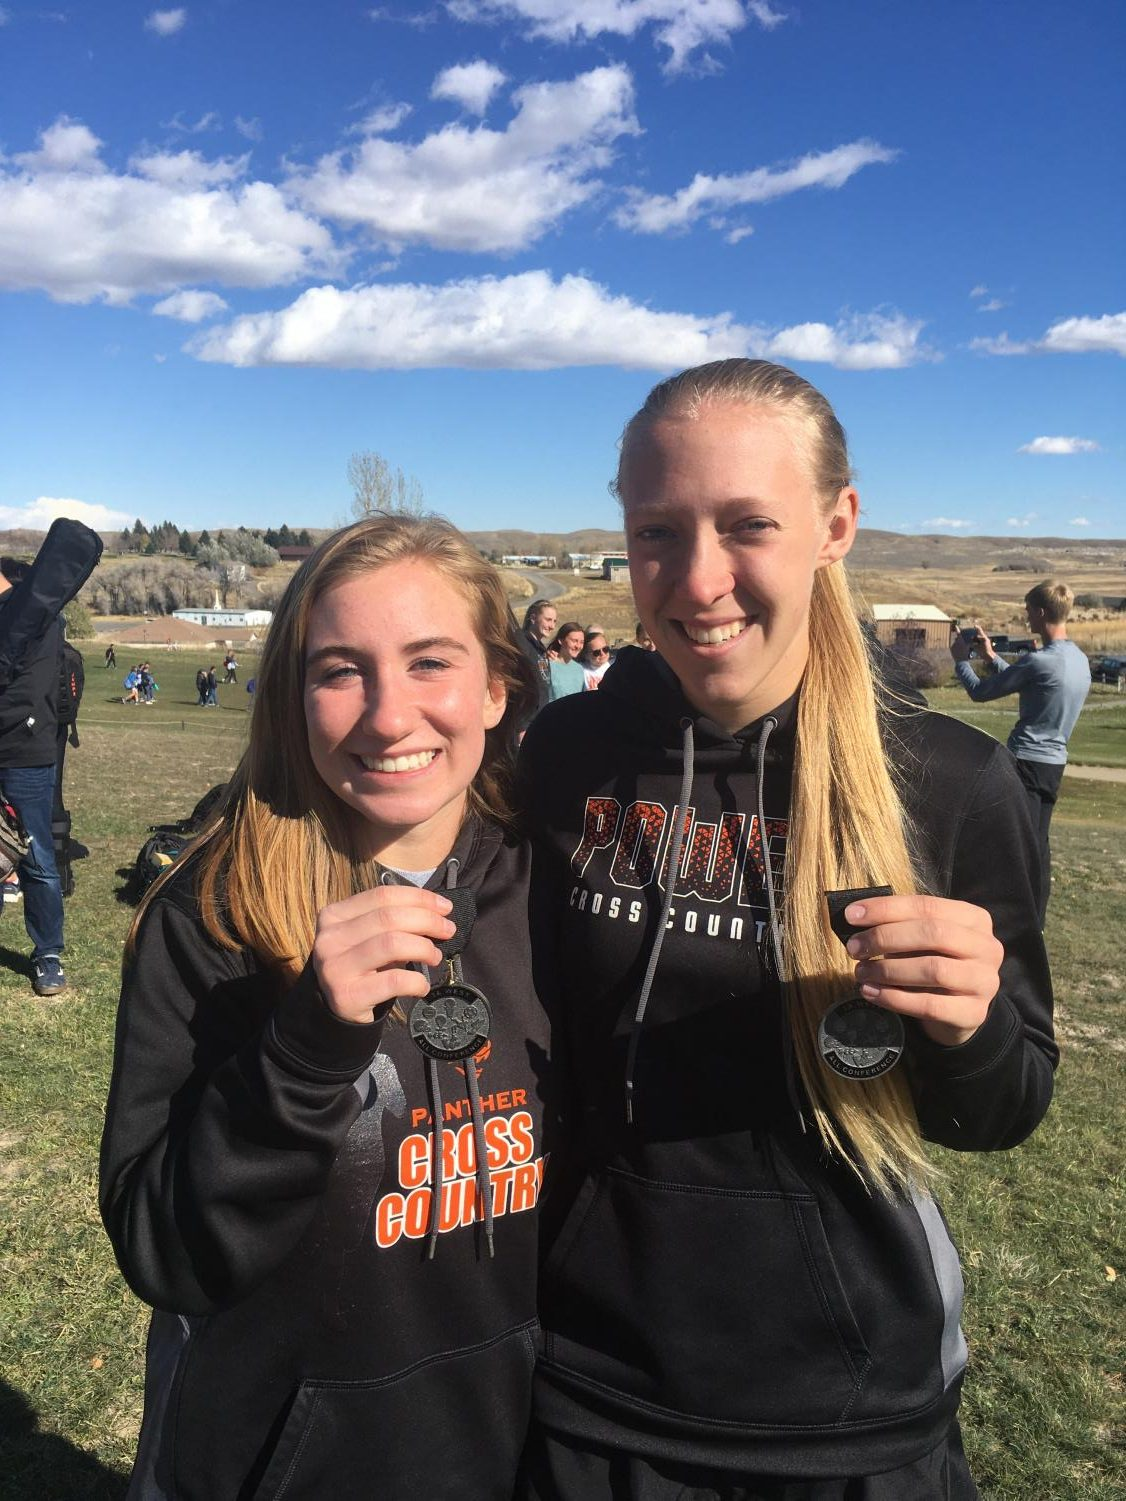 Senior Kayla Kolpitcke and sophomore Kabrie Cannon pose with their All-Conference medals after the conference cross country meet in Lander. All-Conference is awarded to the top ten runners in each conference.